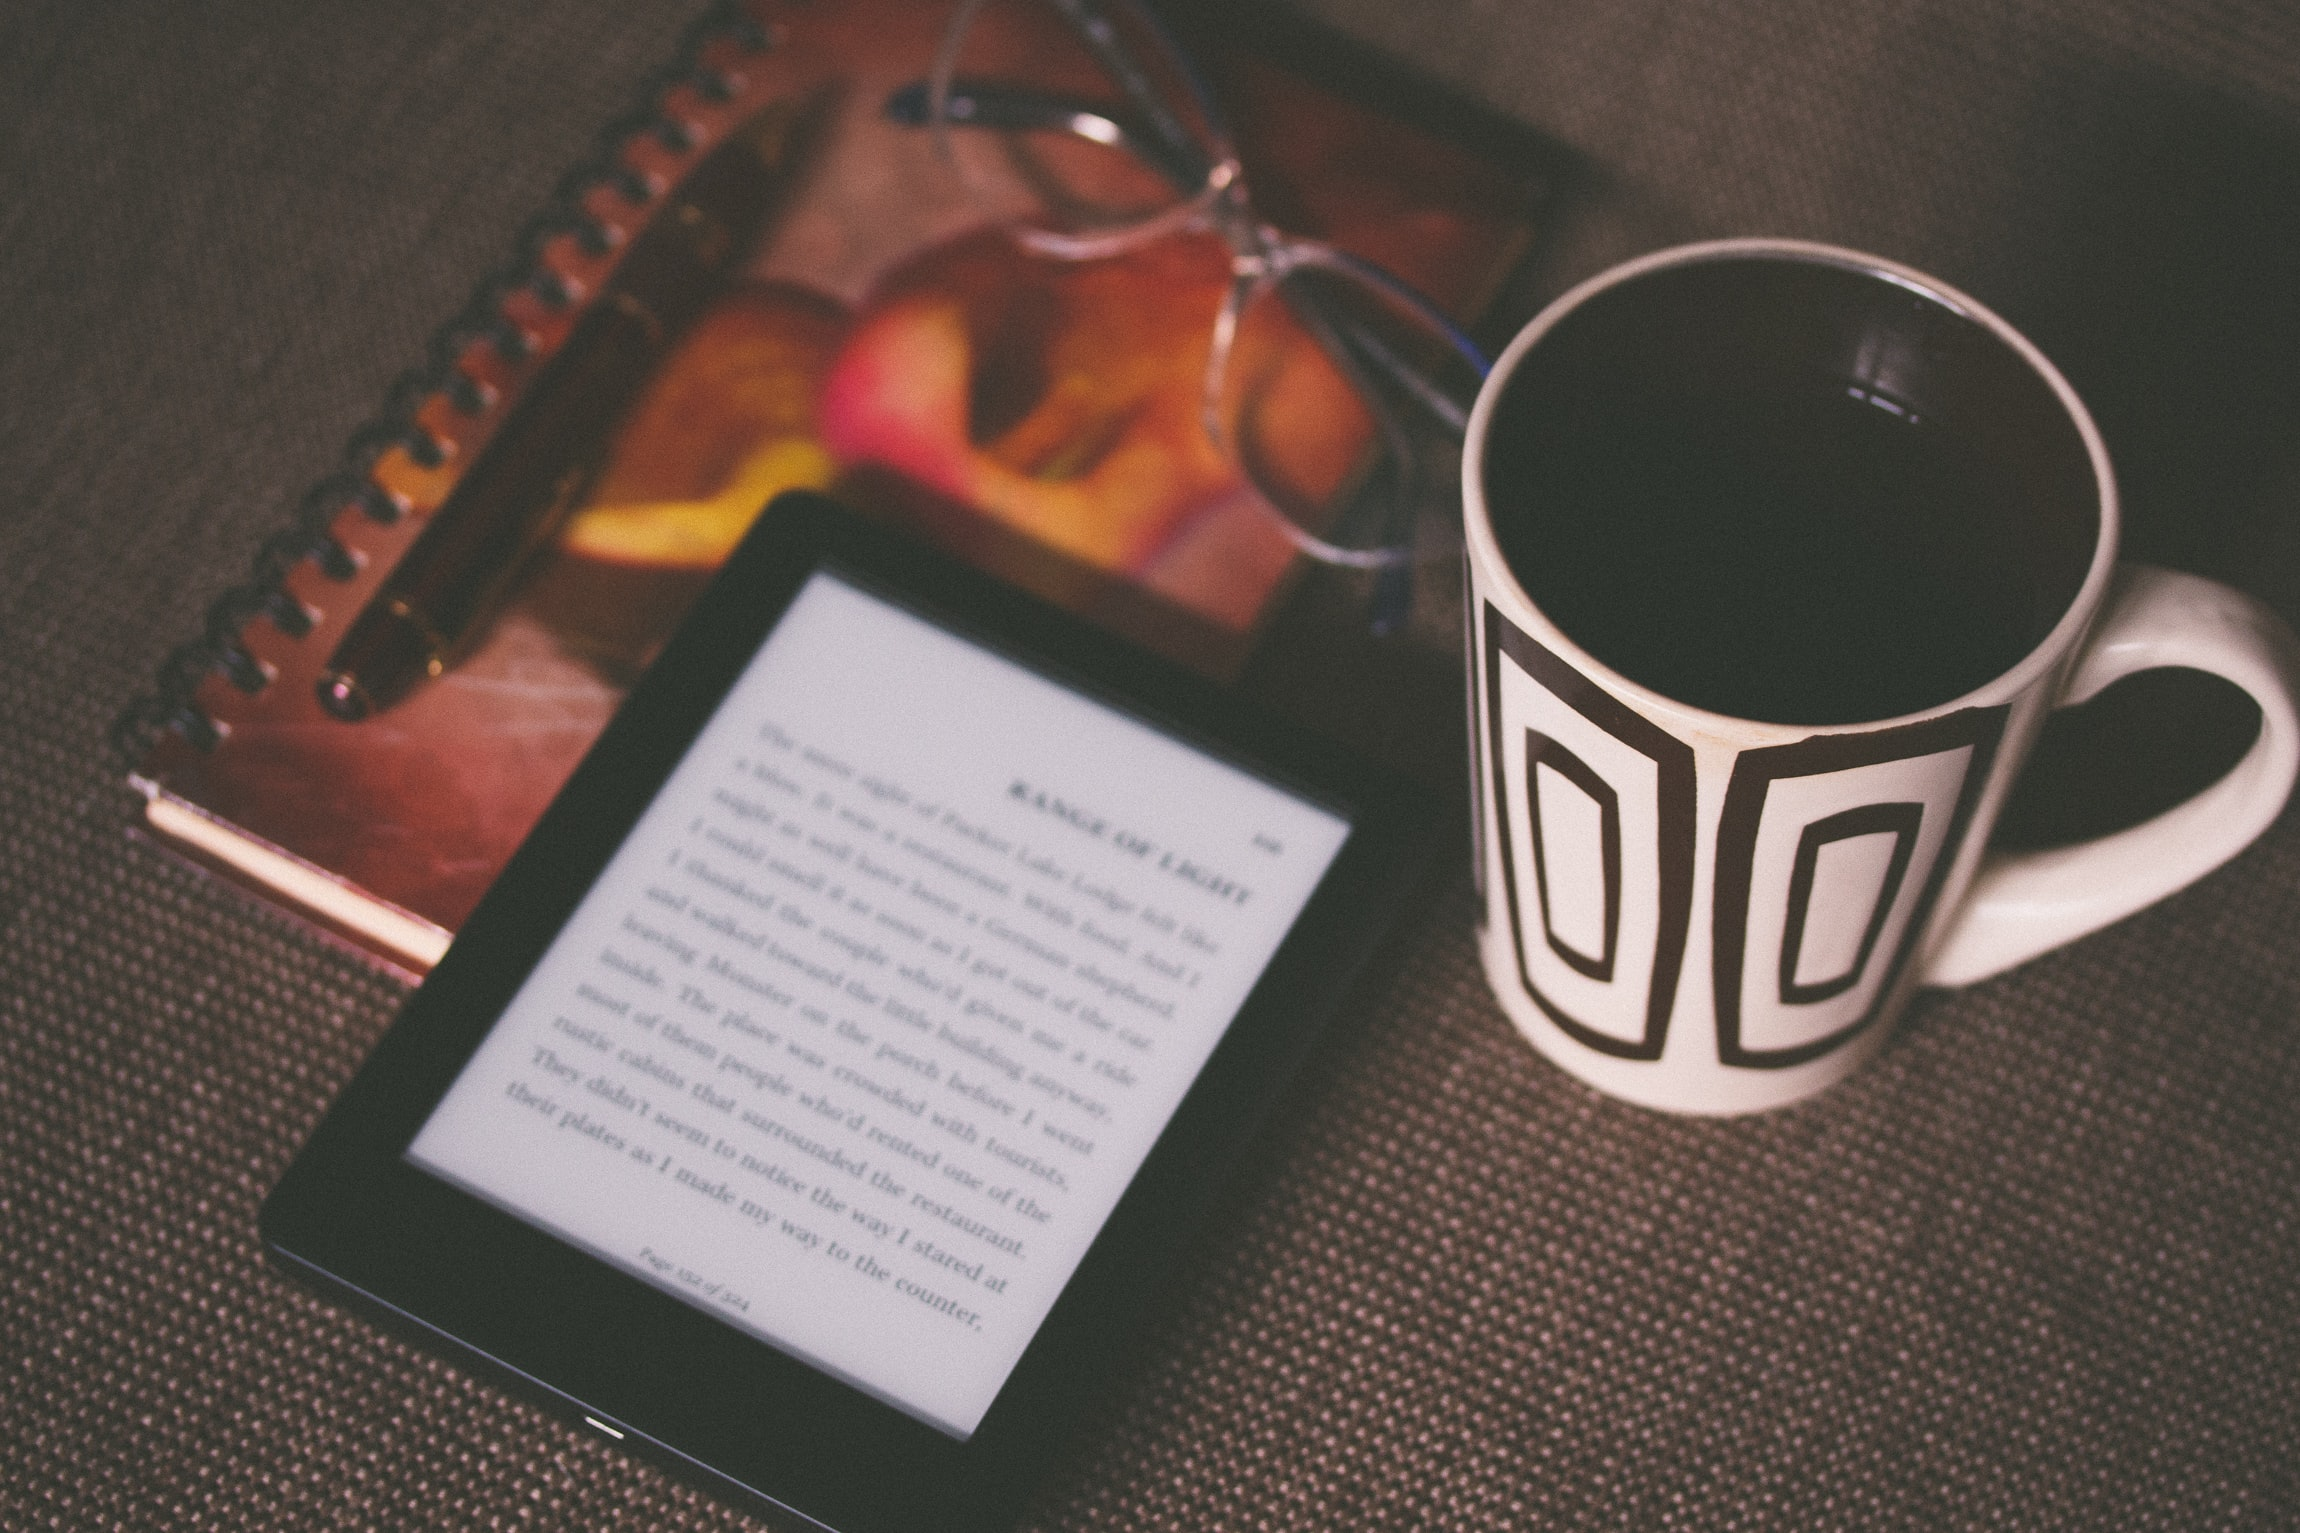 A Kindle tablet, journal, accessories and a coffee mug.